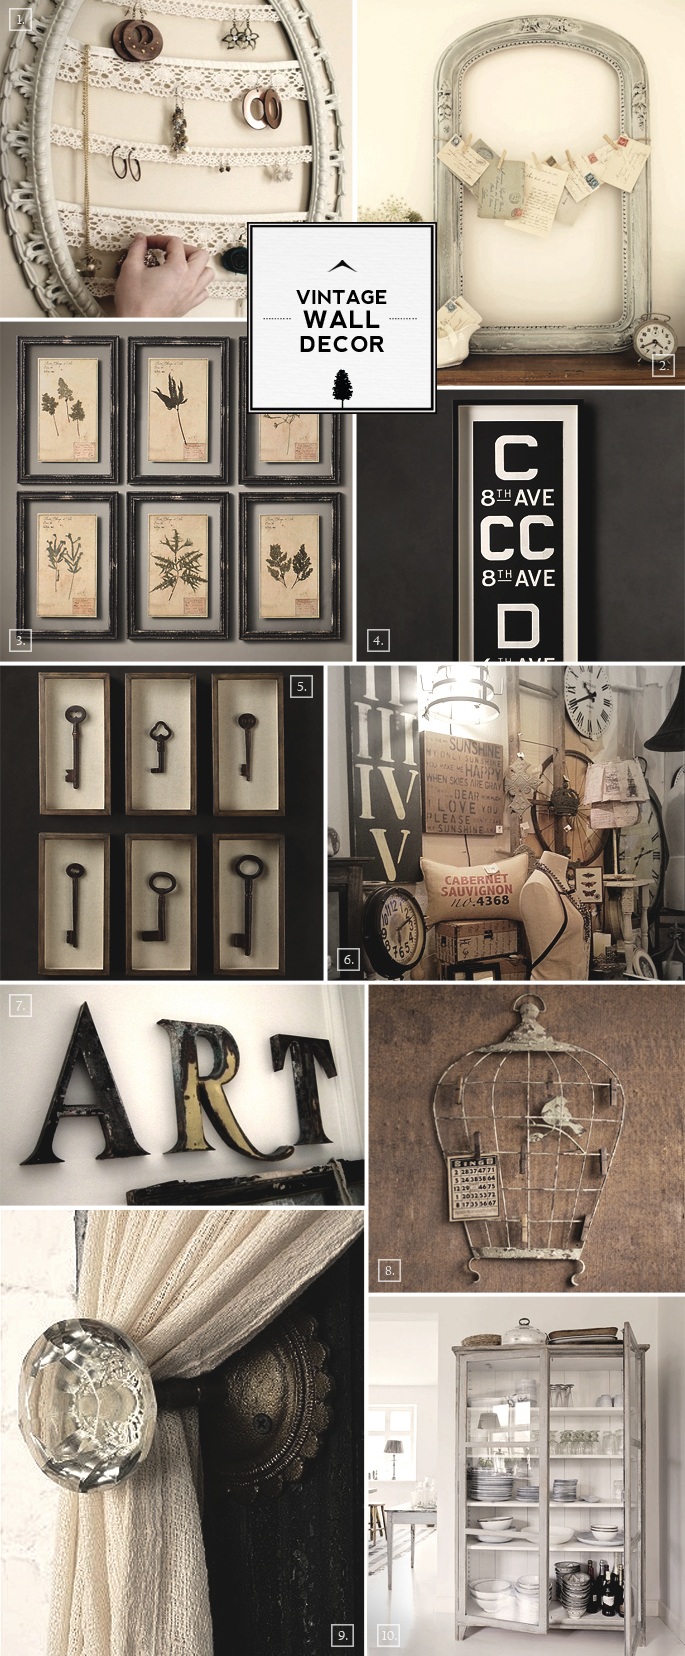 Home Decorators Key Wall Art ~ Vintage wall decor ideas from bird cages to designing